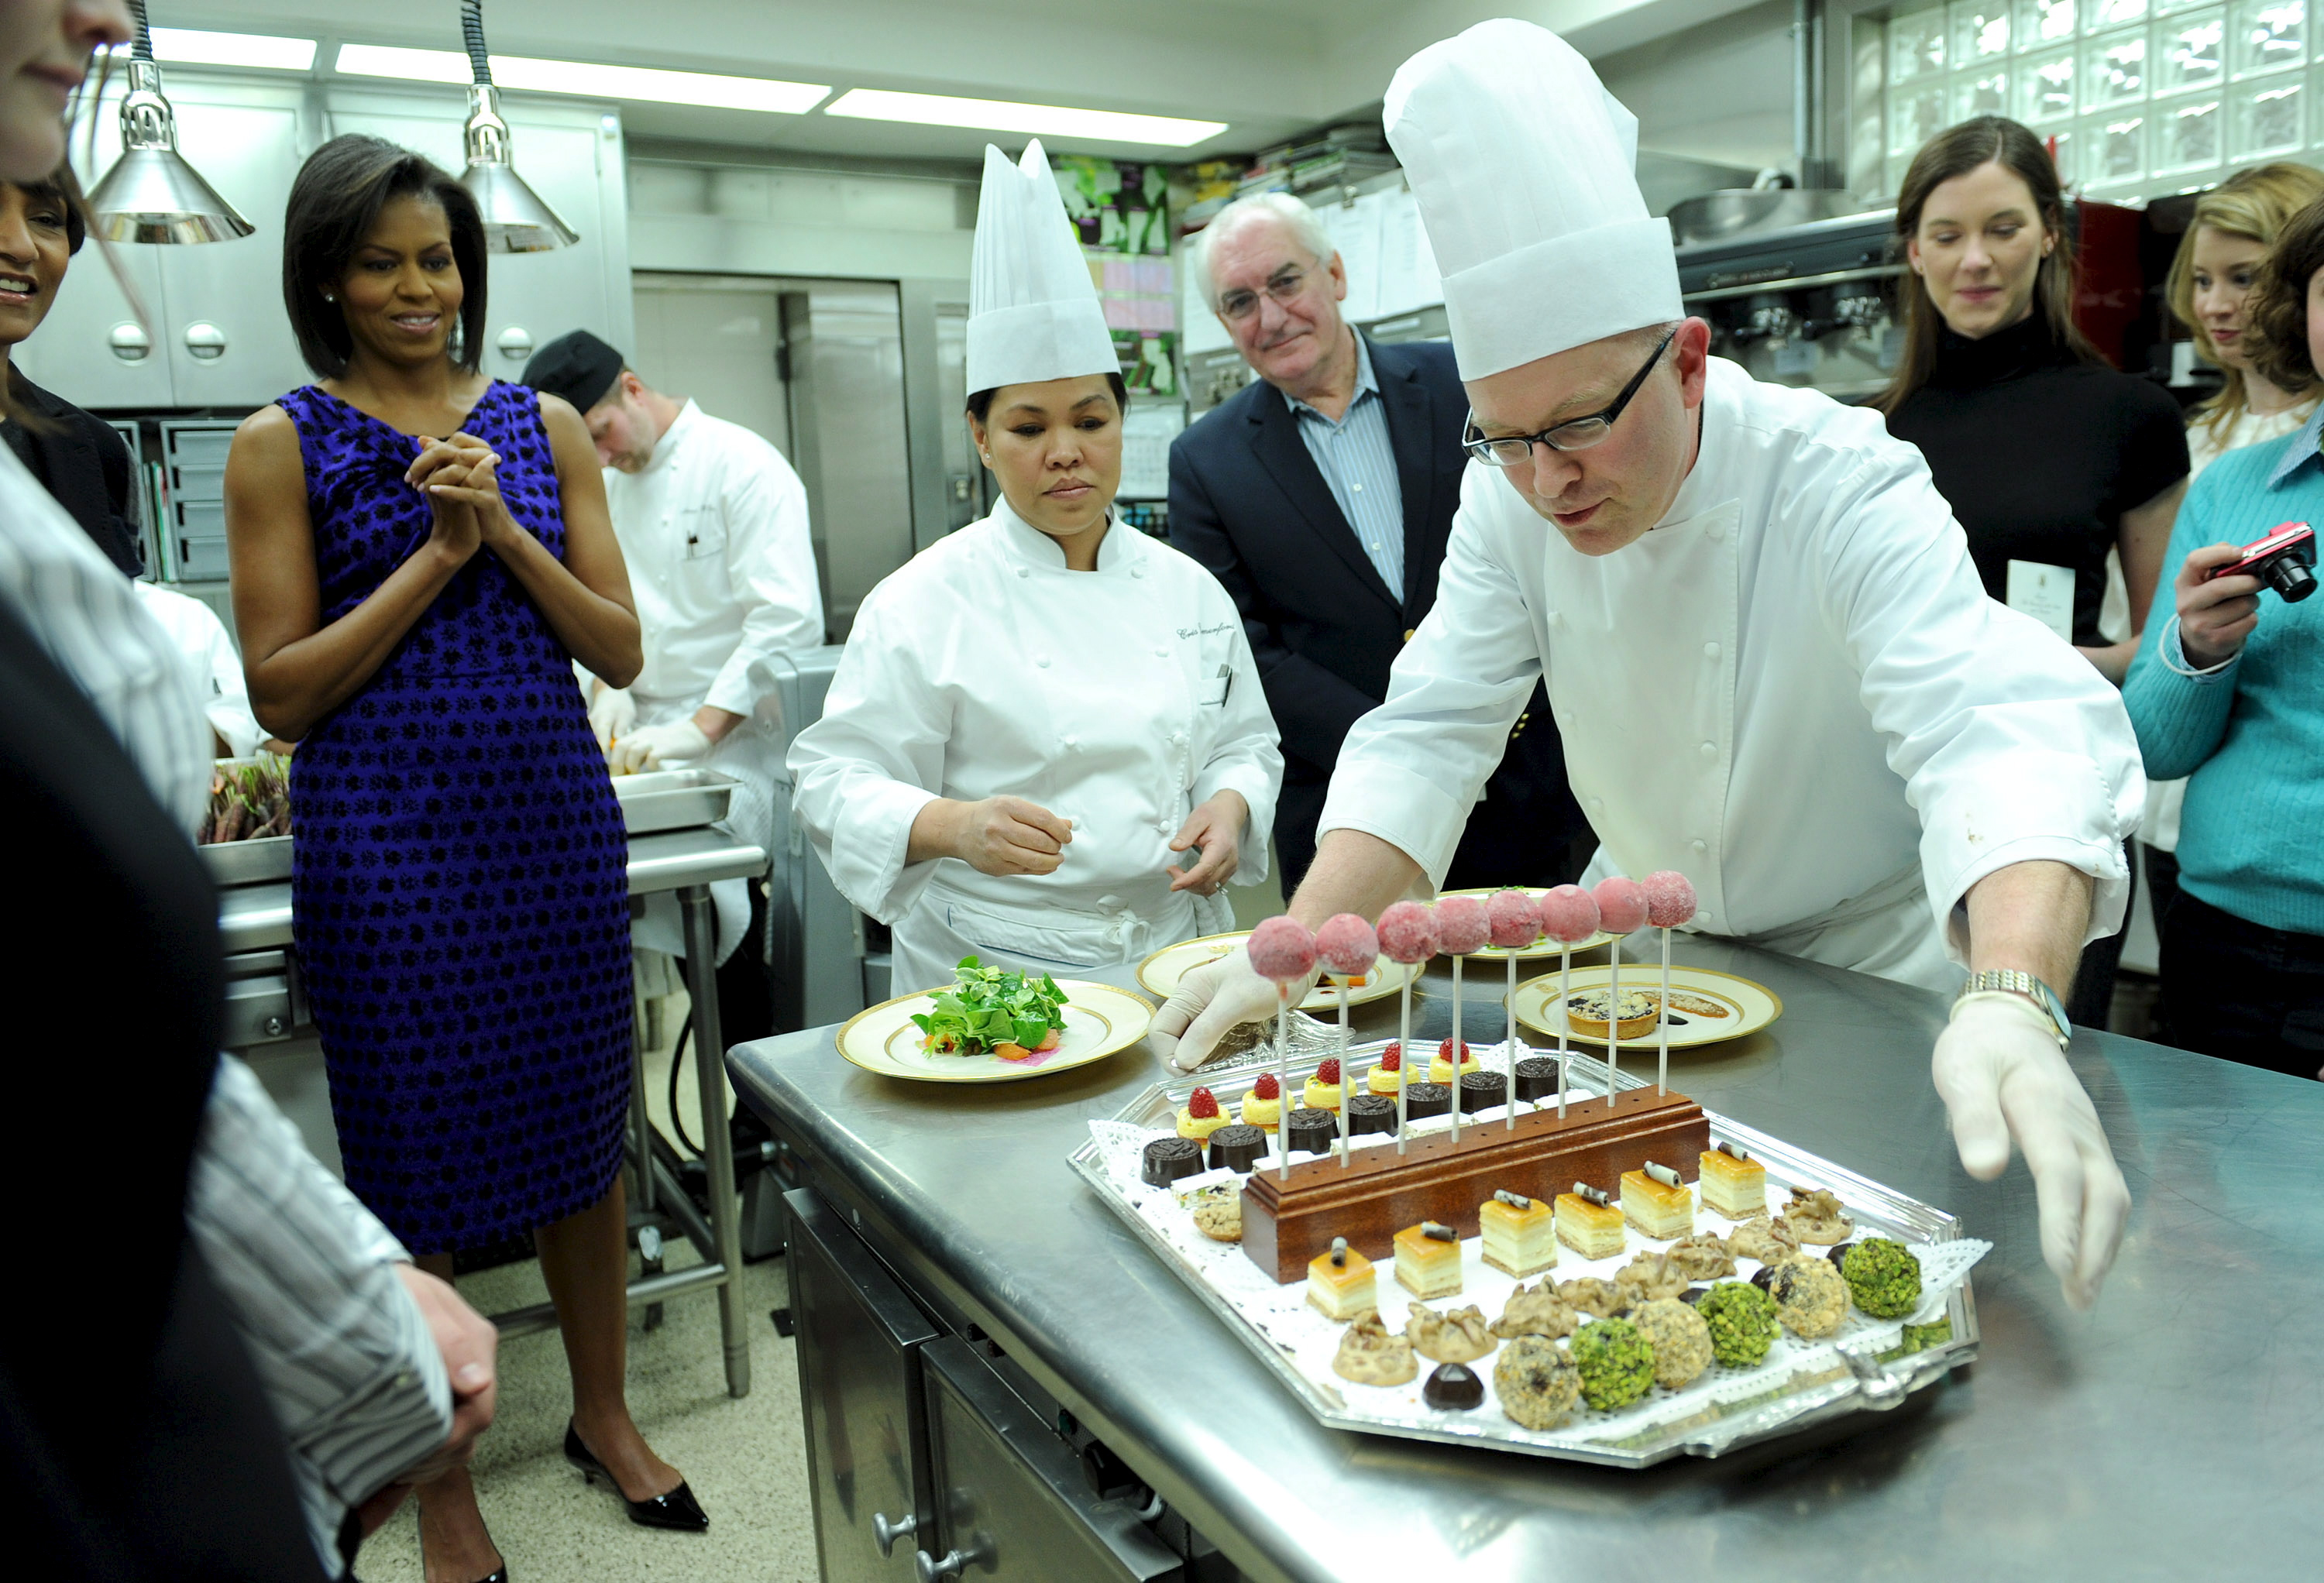 Washington - White House Losing Pastry Chef Bill Yosses In June